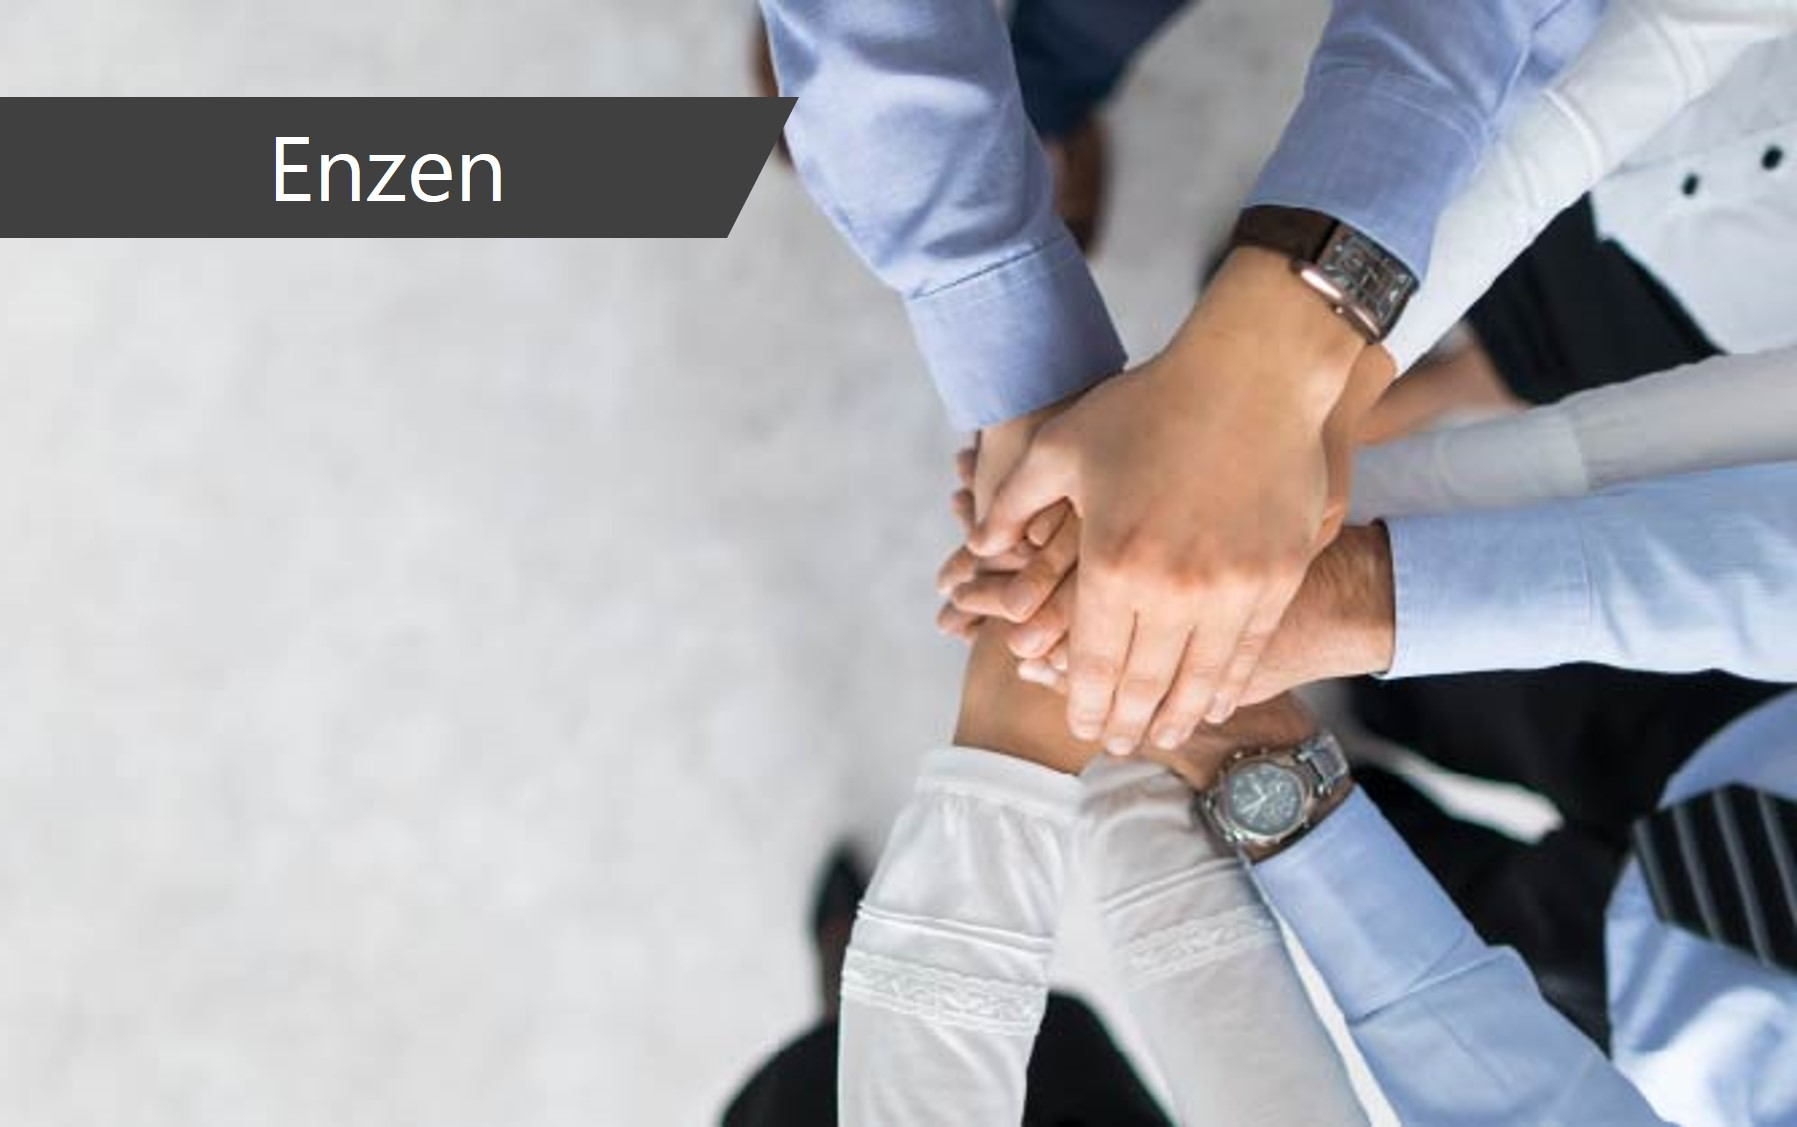 Enzen and Microland announce a global strategic partnership